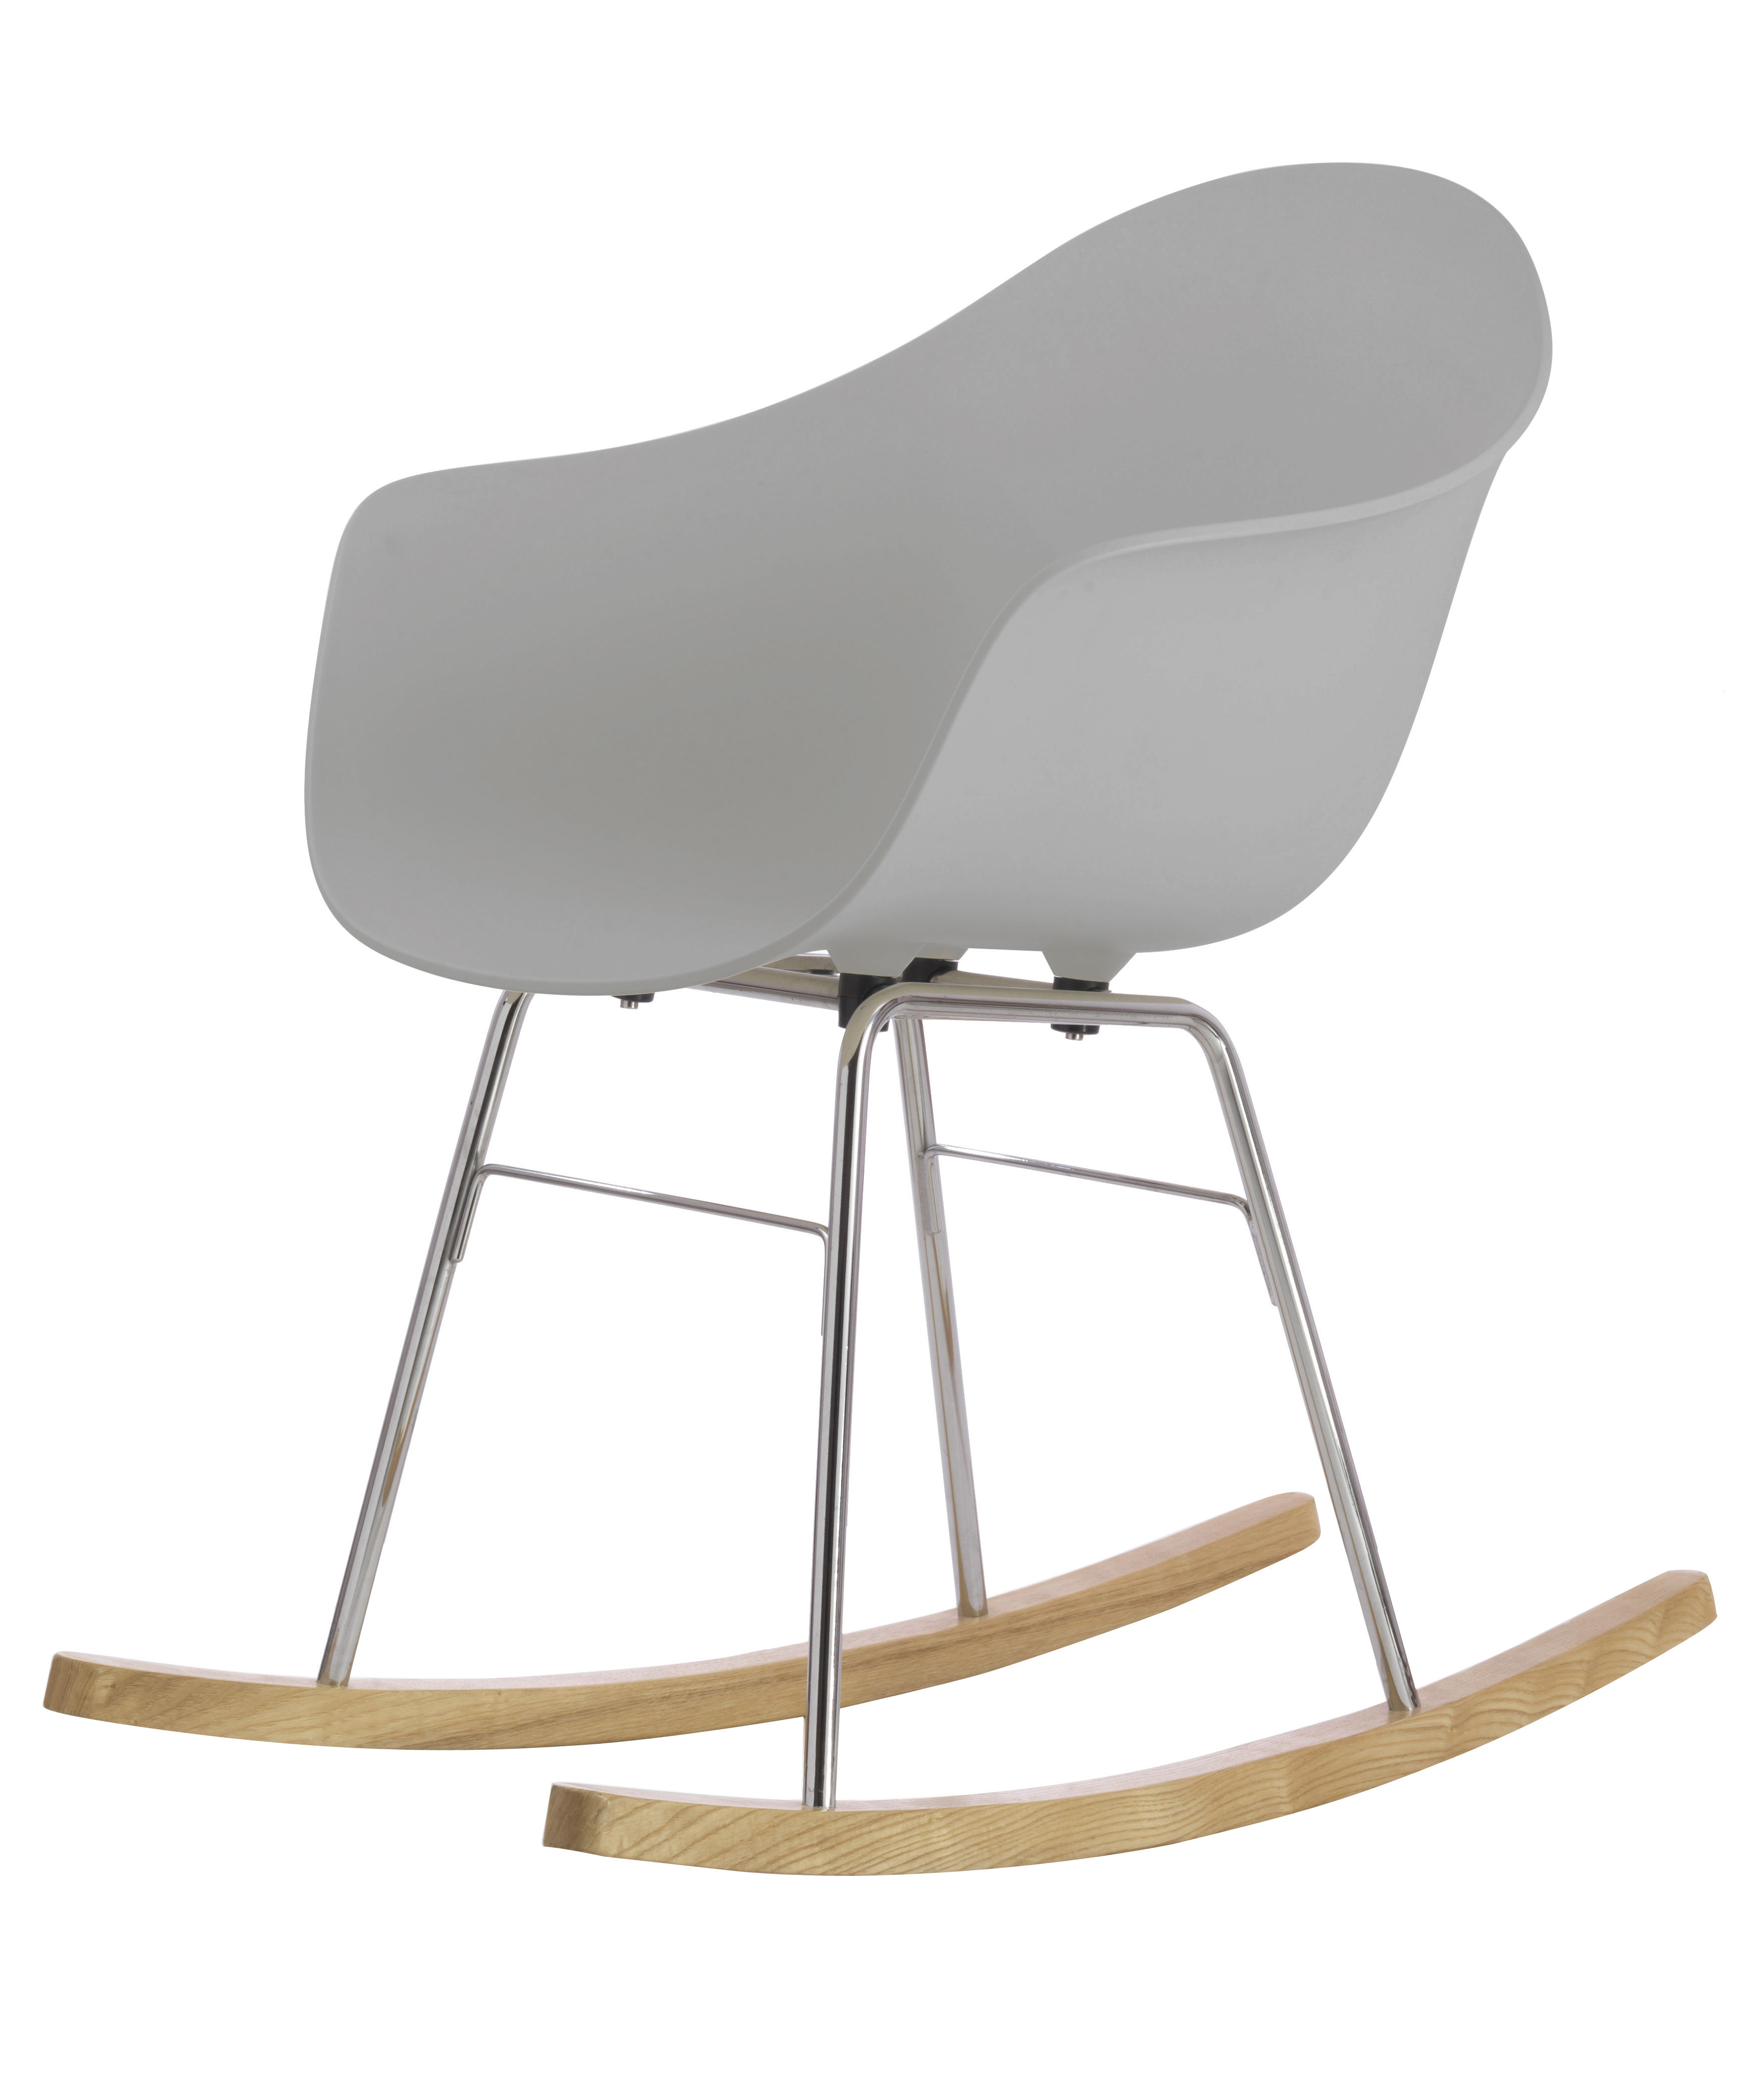 Furniture - Armchairs - TA Rocking chair - Wood sledge by Toou - Gris / Chromé & patins bois - Chromed metal, Natural oak, Polypropylene